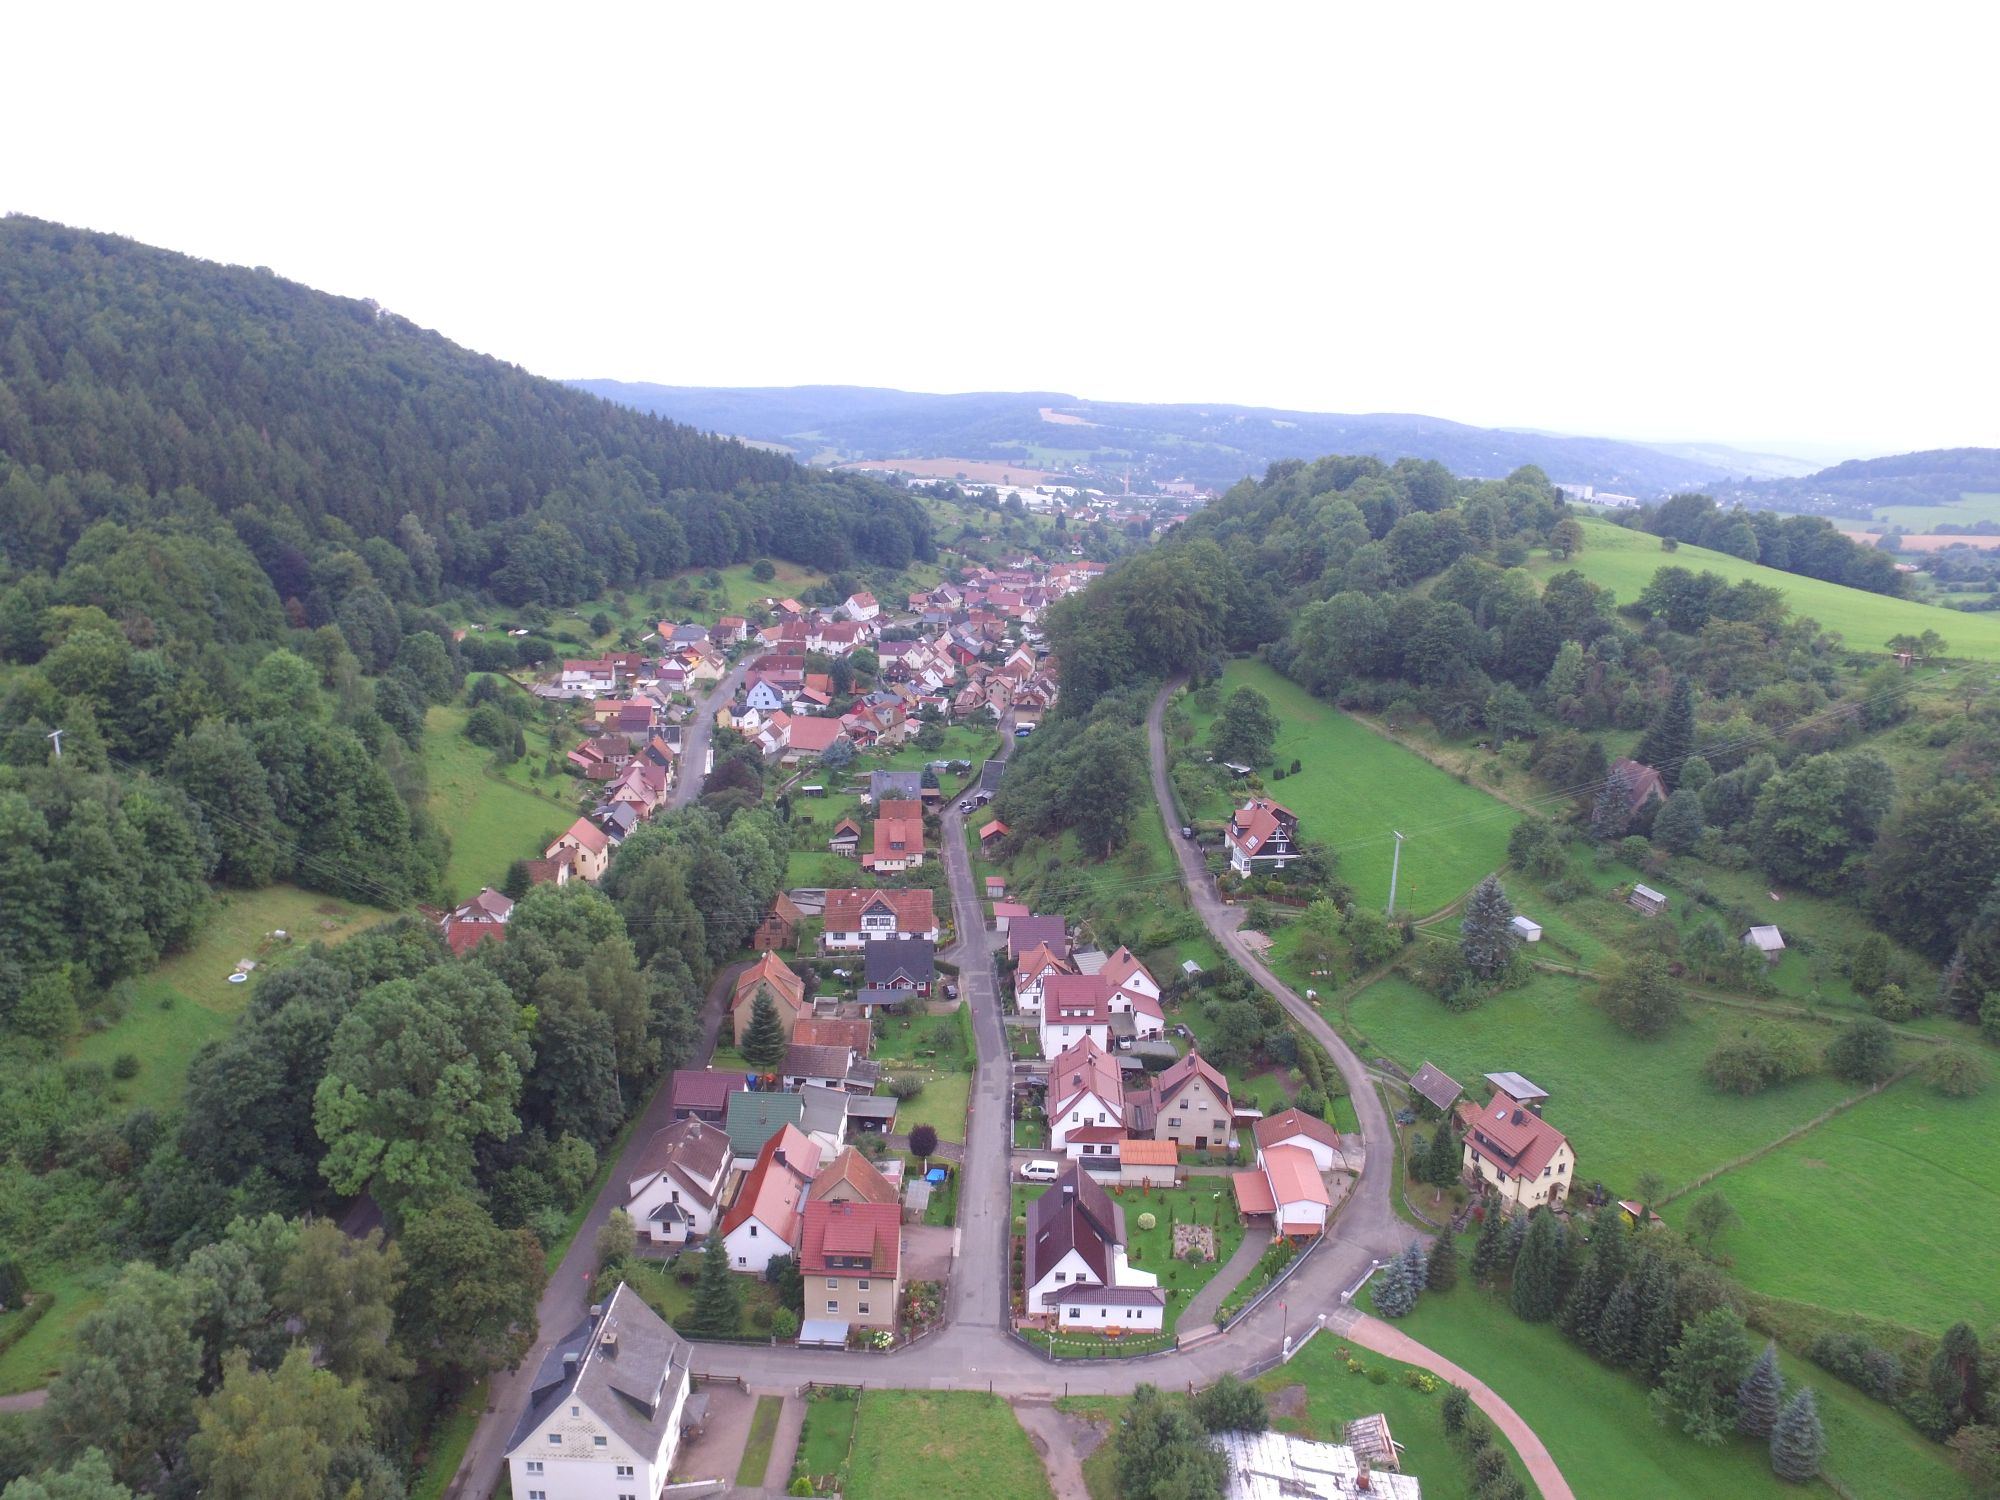 Asbach from above